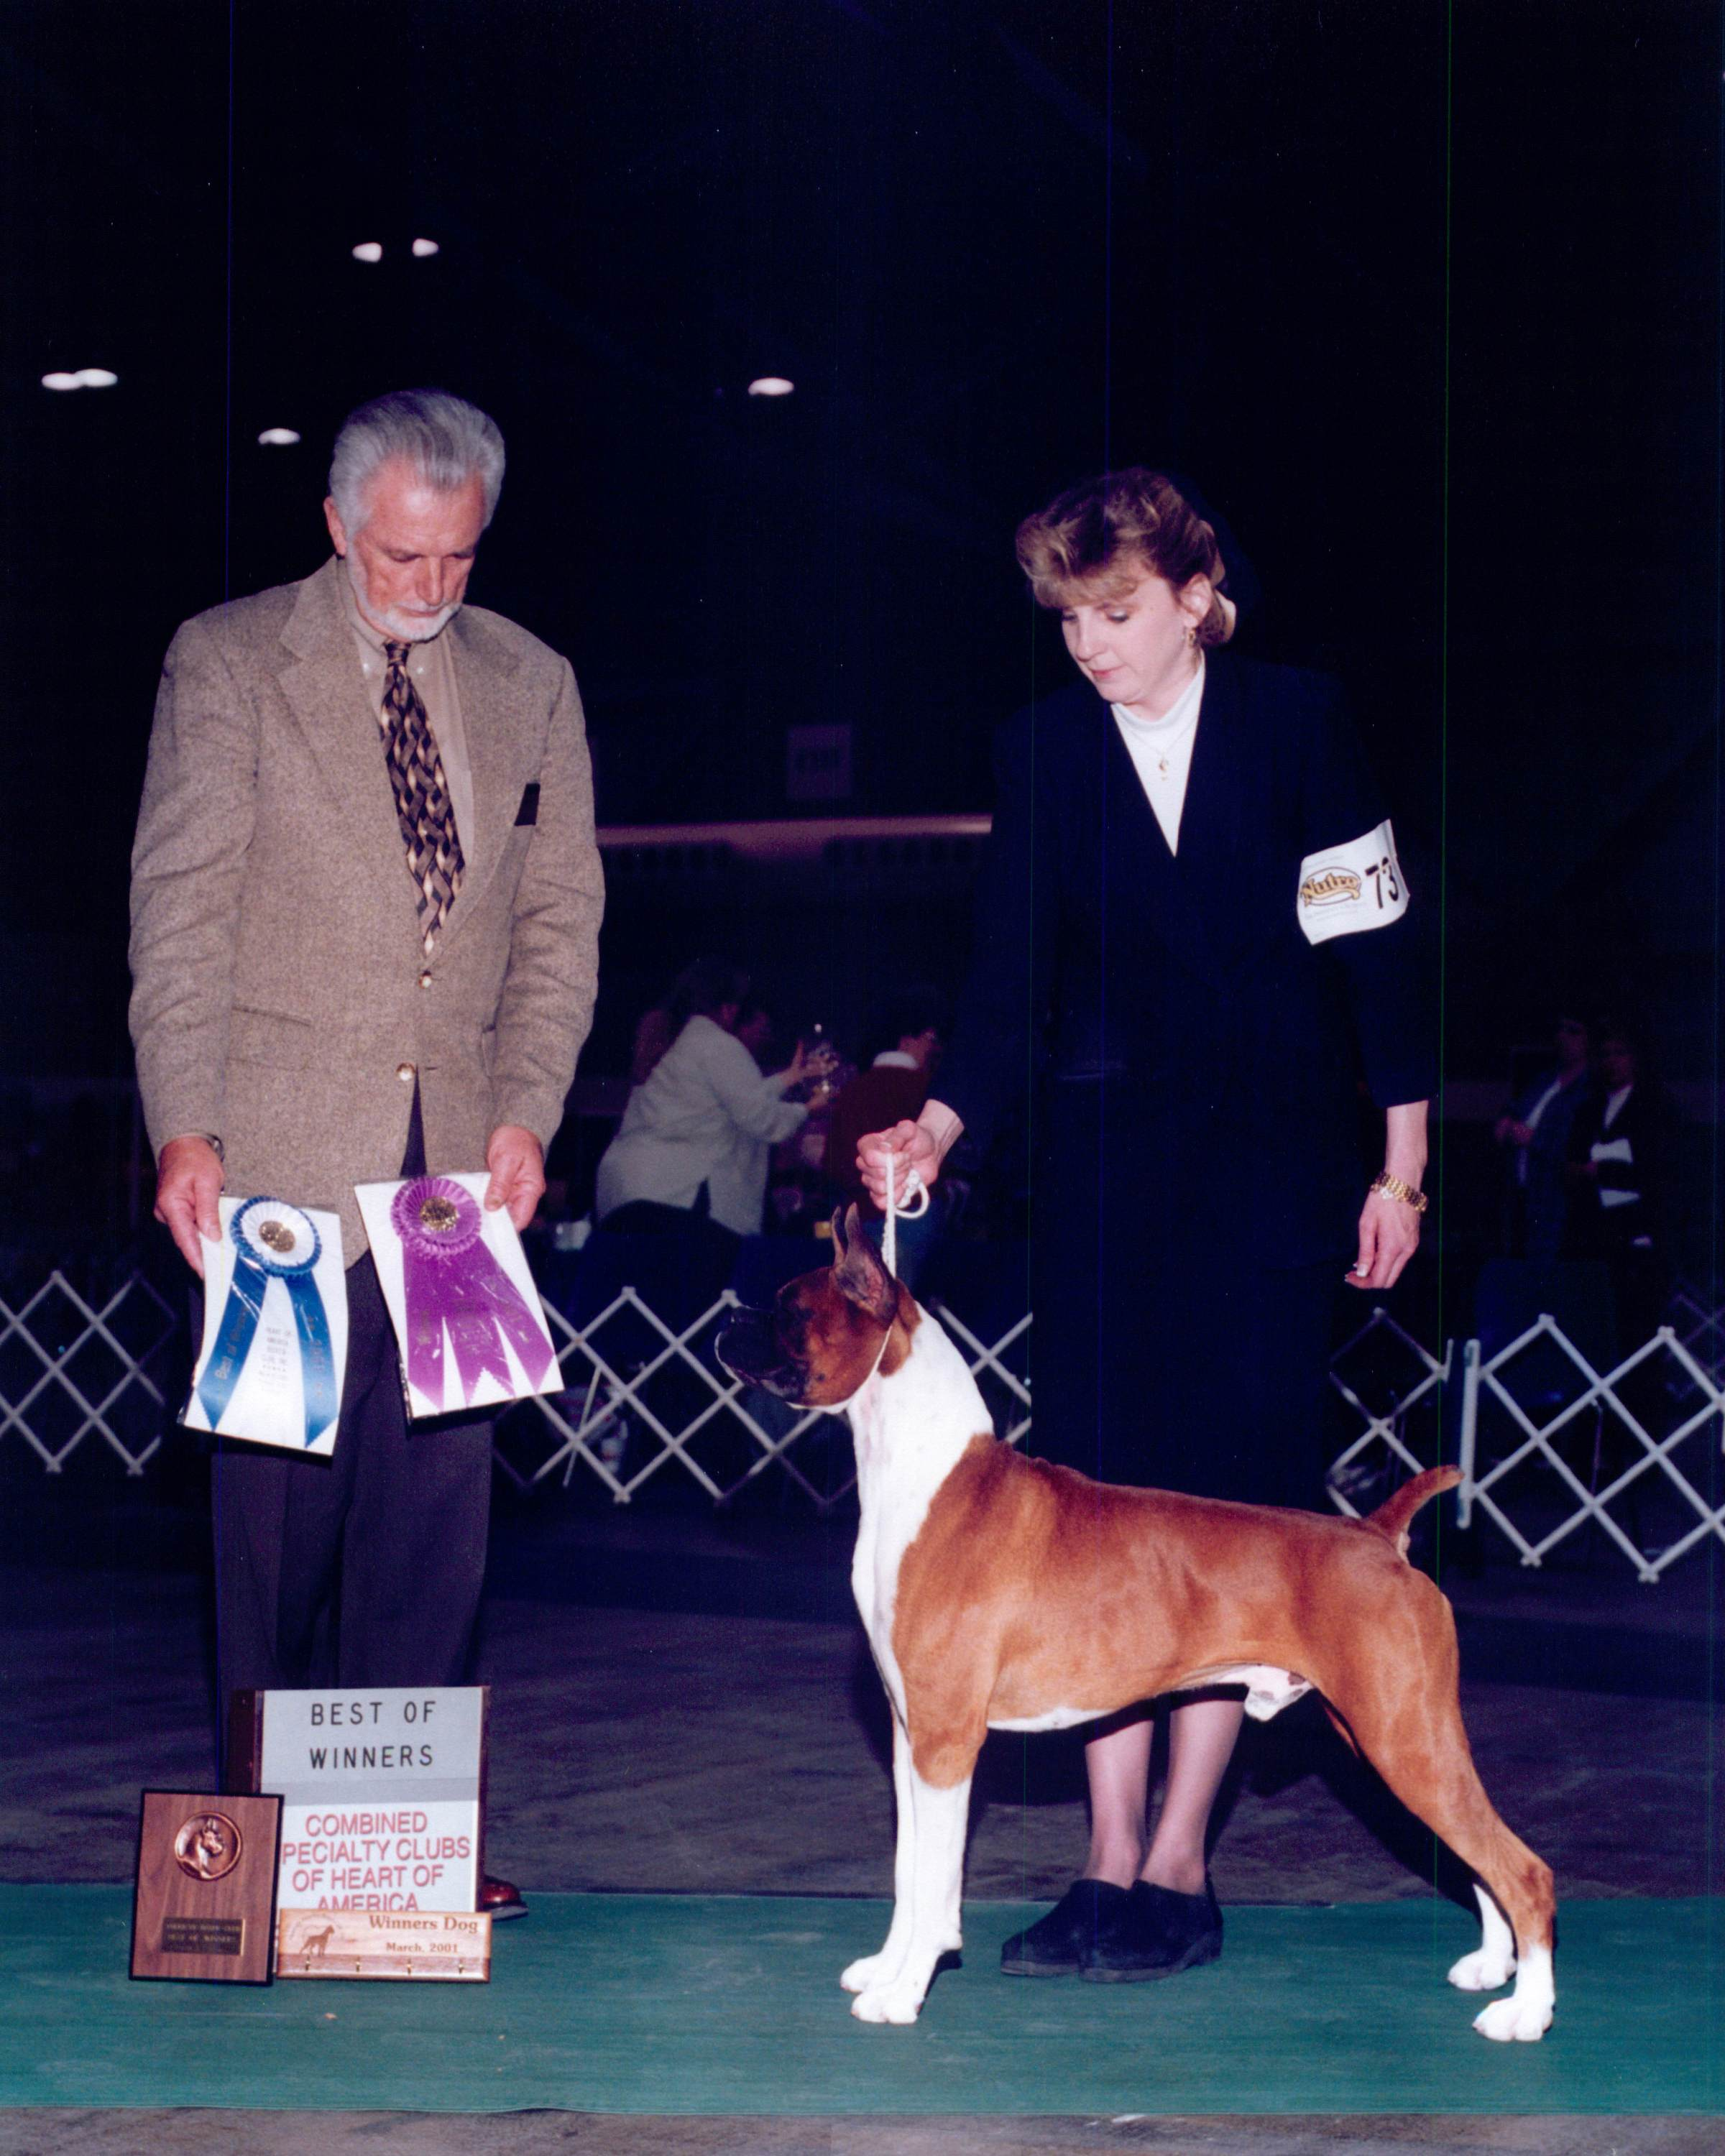 Best of Winners & Winners Dog @ 2001 Specialty Show #1